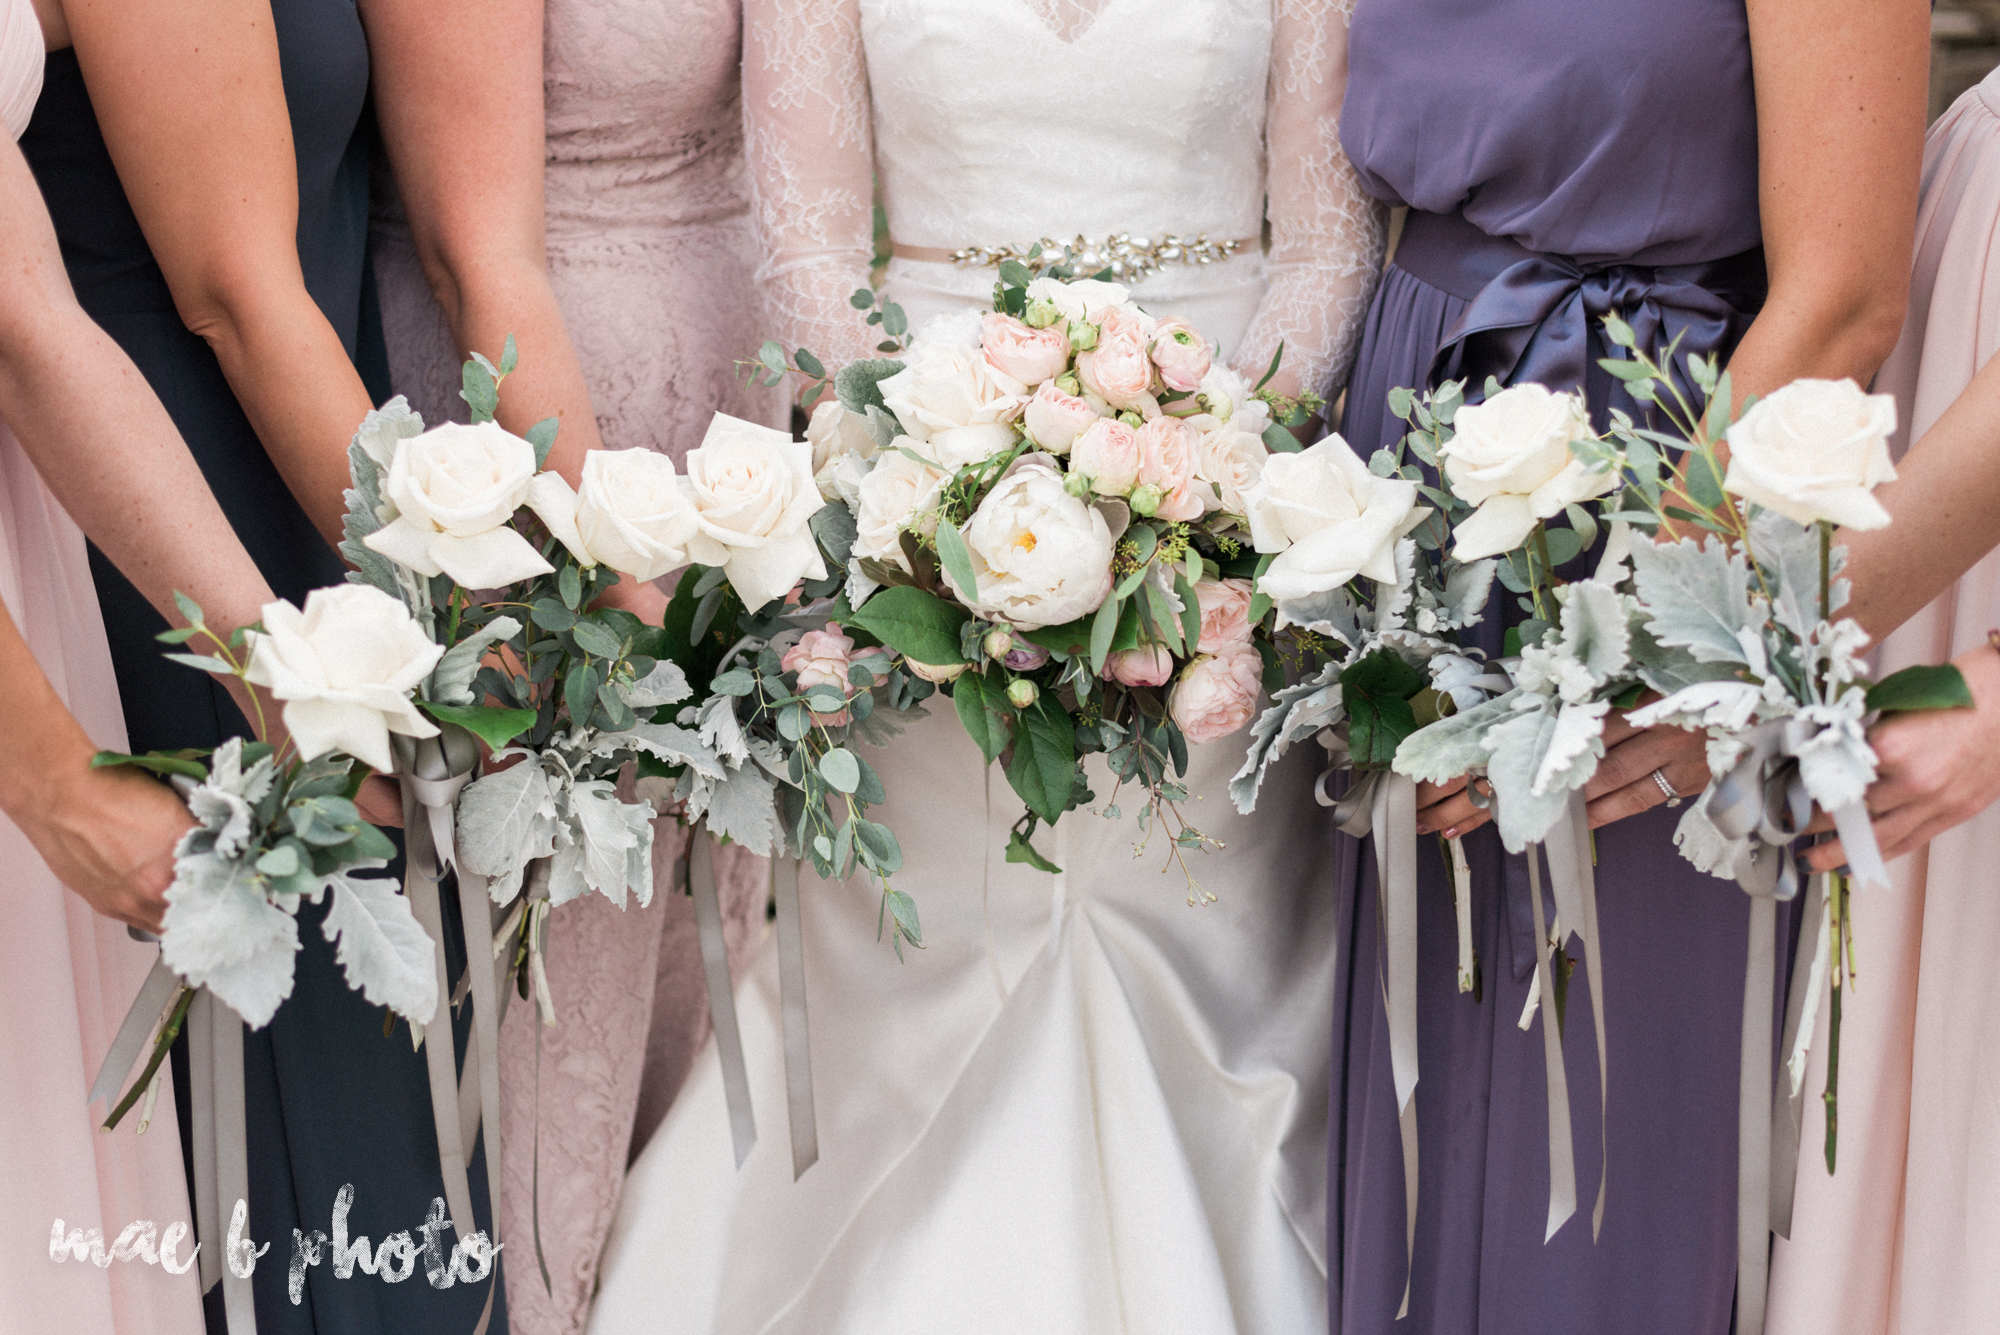 emily and michael's industrial chic summer country club wedding at the lake club in poland ohio photographed by cleveland wedding photographer mae b photo-77.jpg